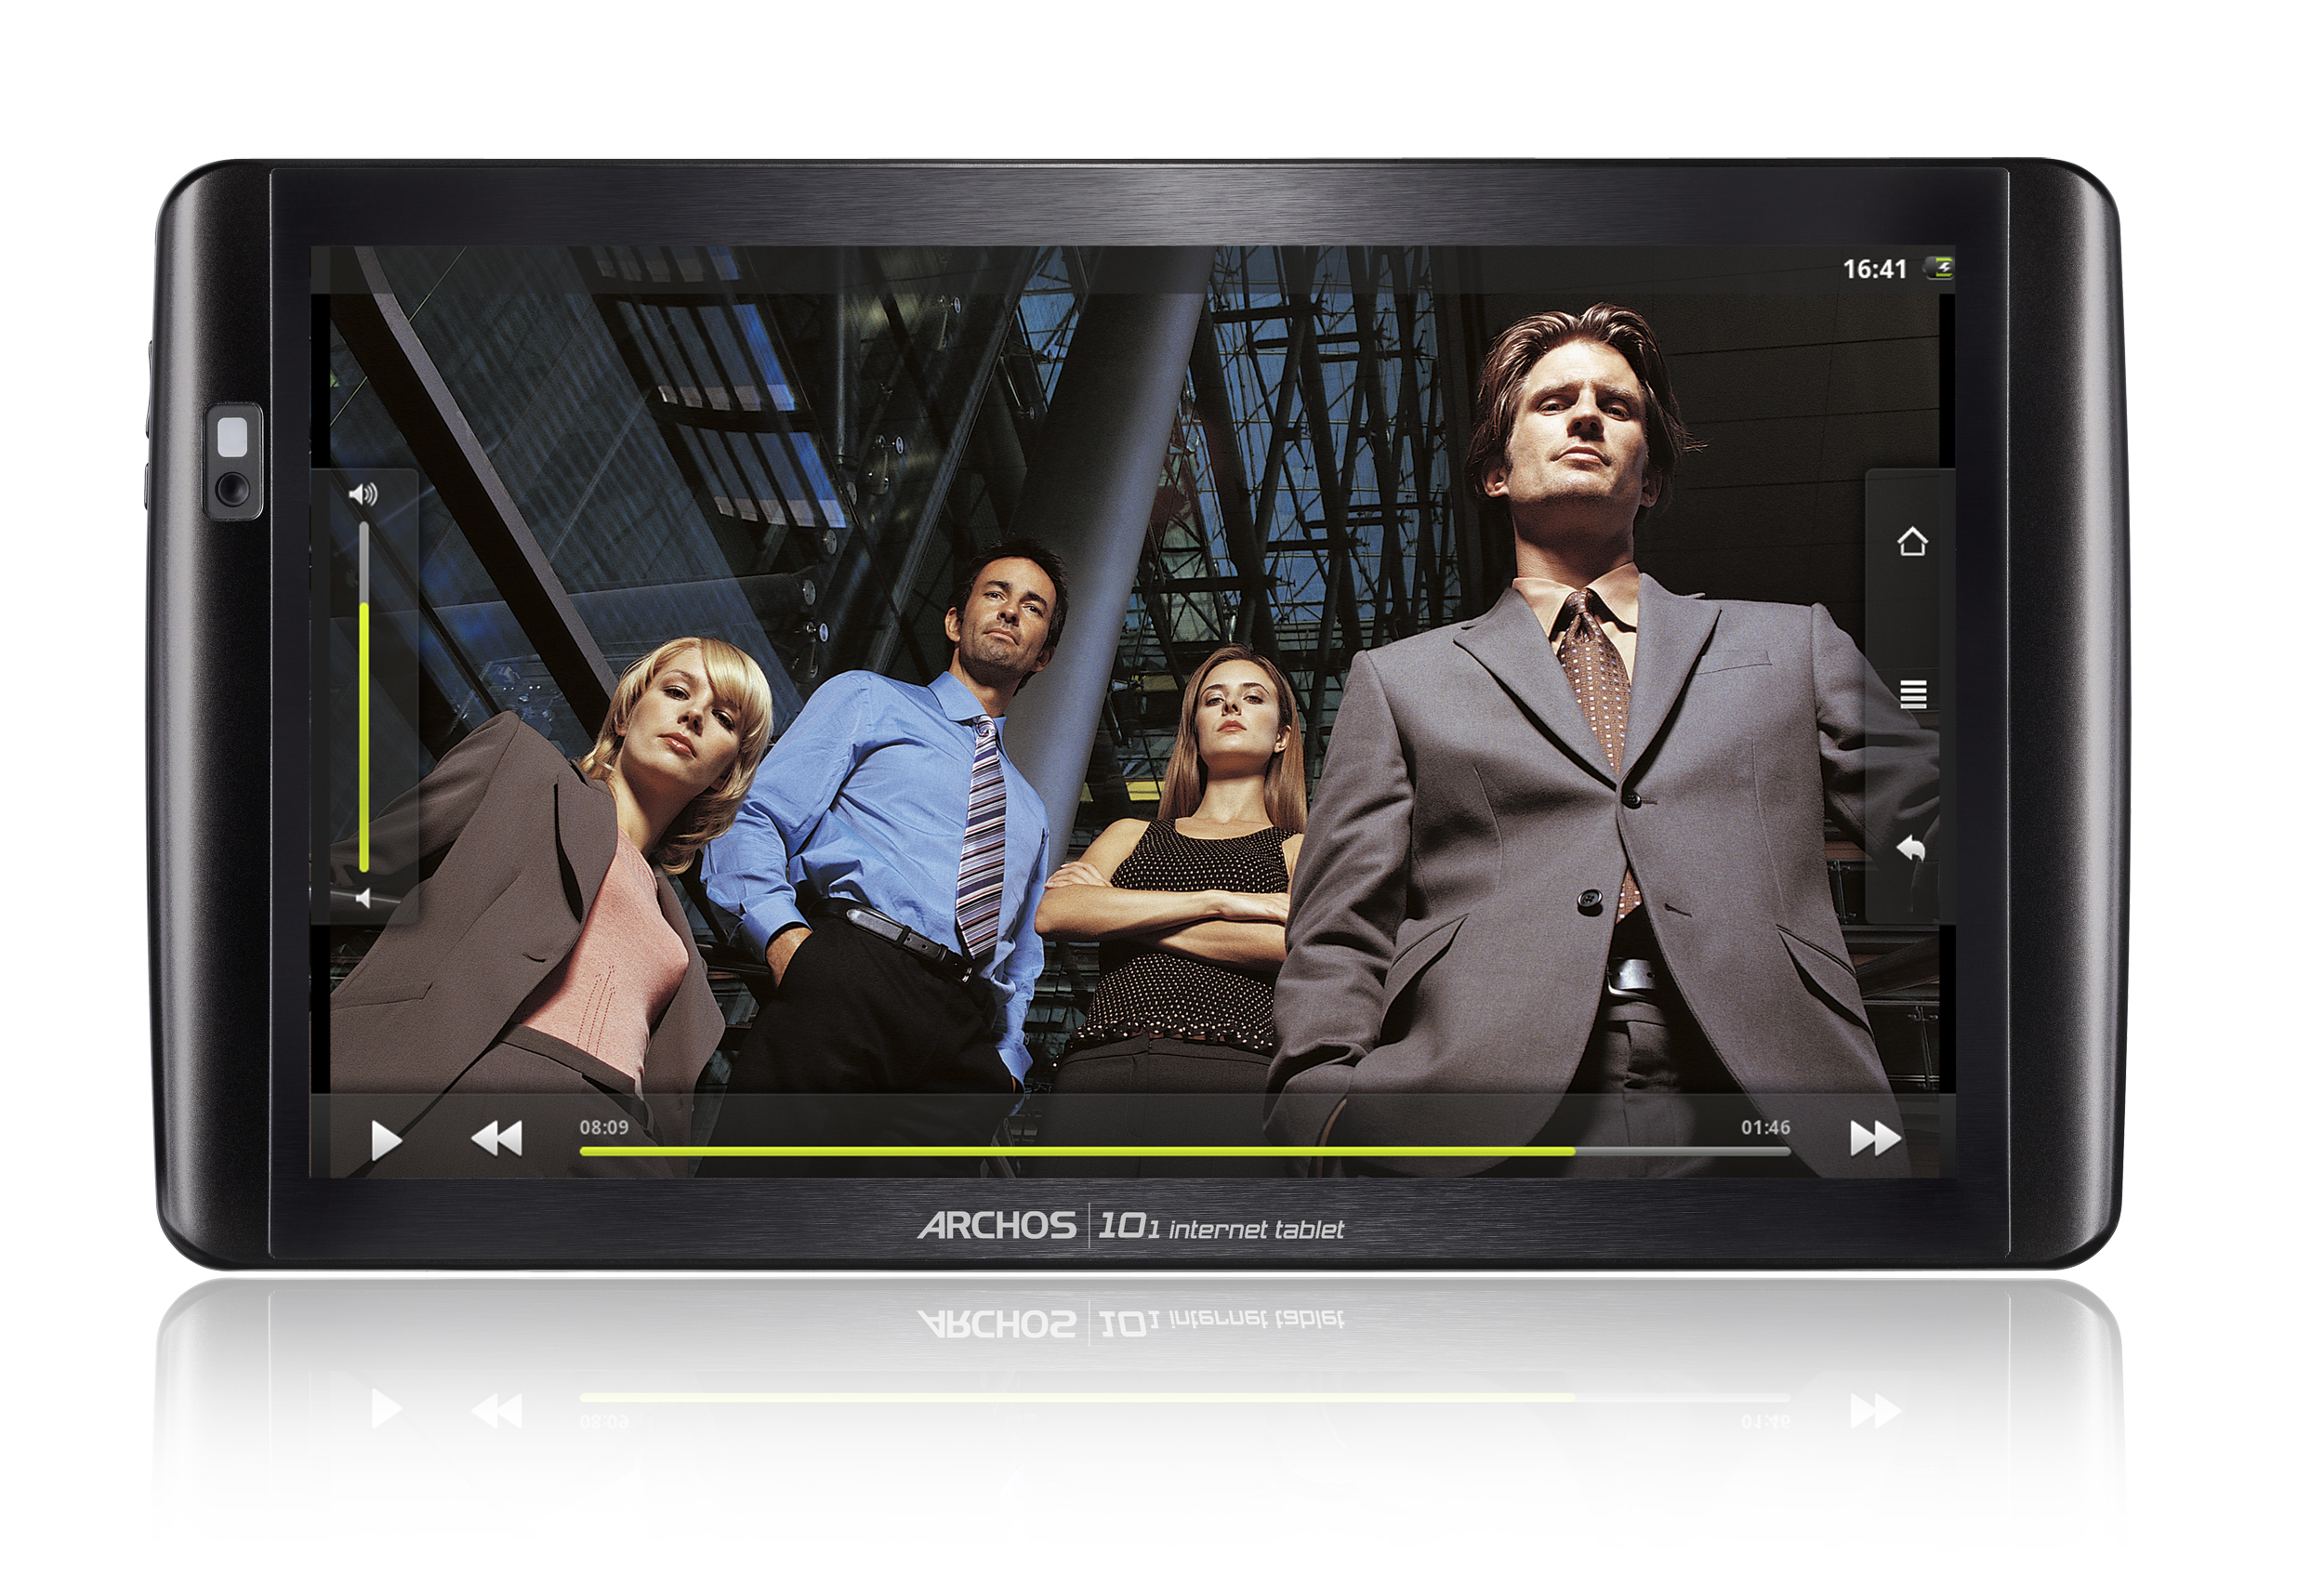 microsoft surface algiz for tablet outdoor compared blind the rugged to tab samsung blinds galaxy